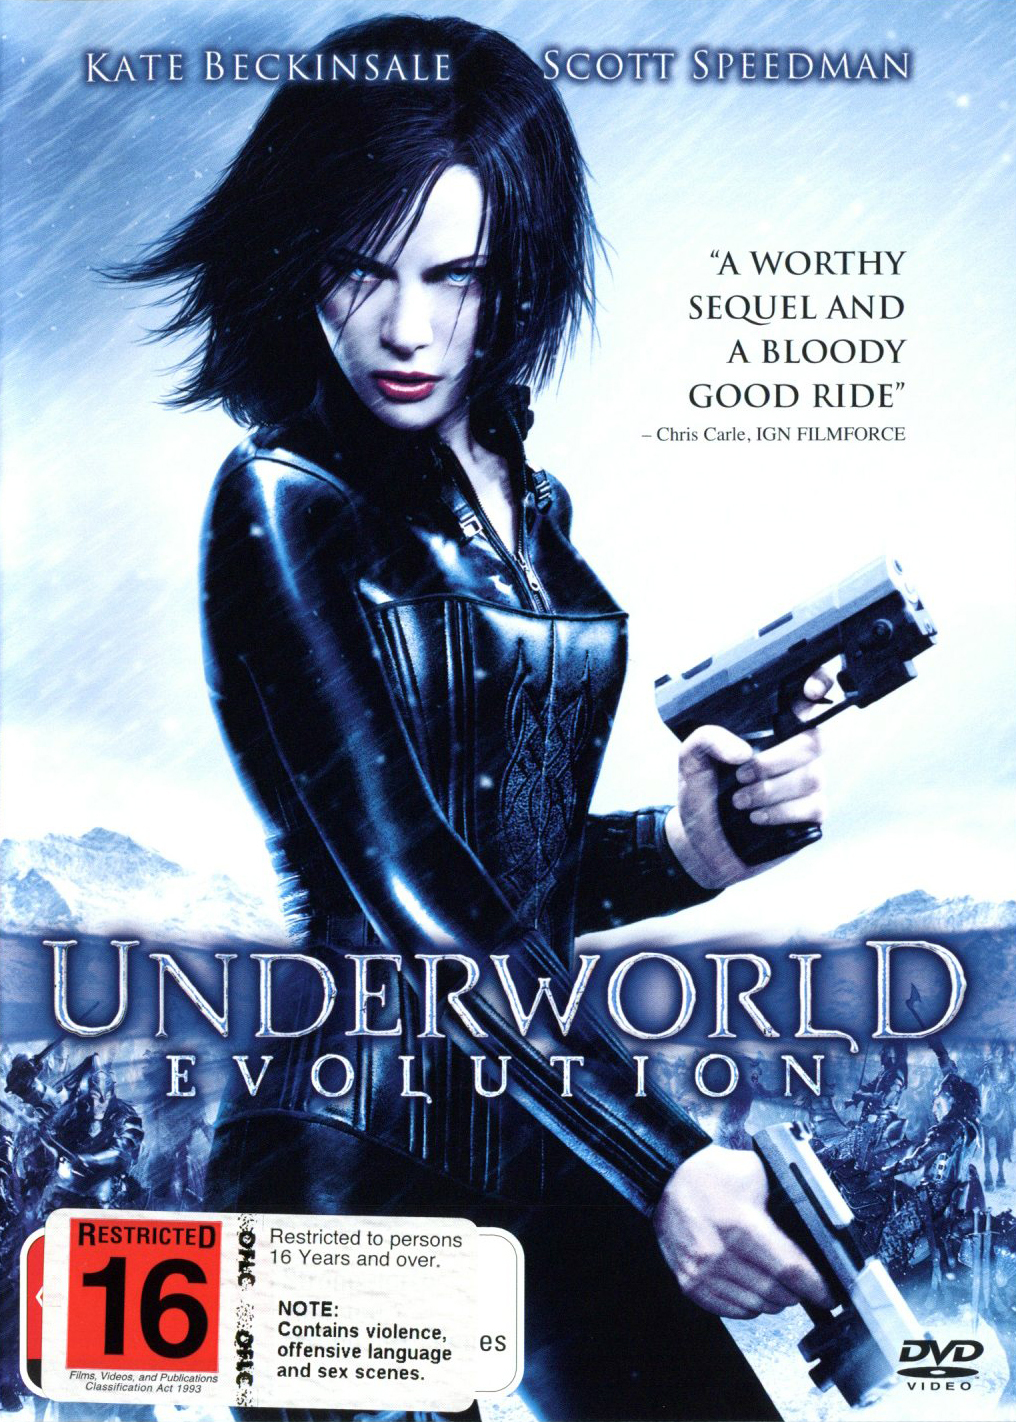 Underworld - Evolution on DVD image